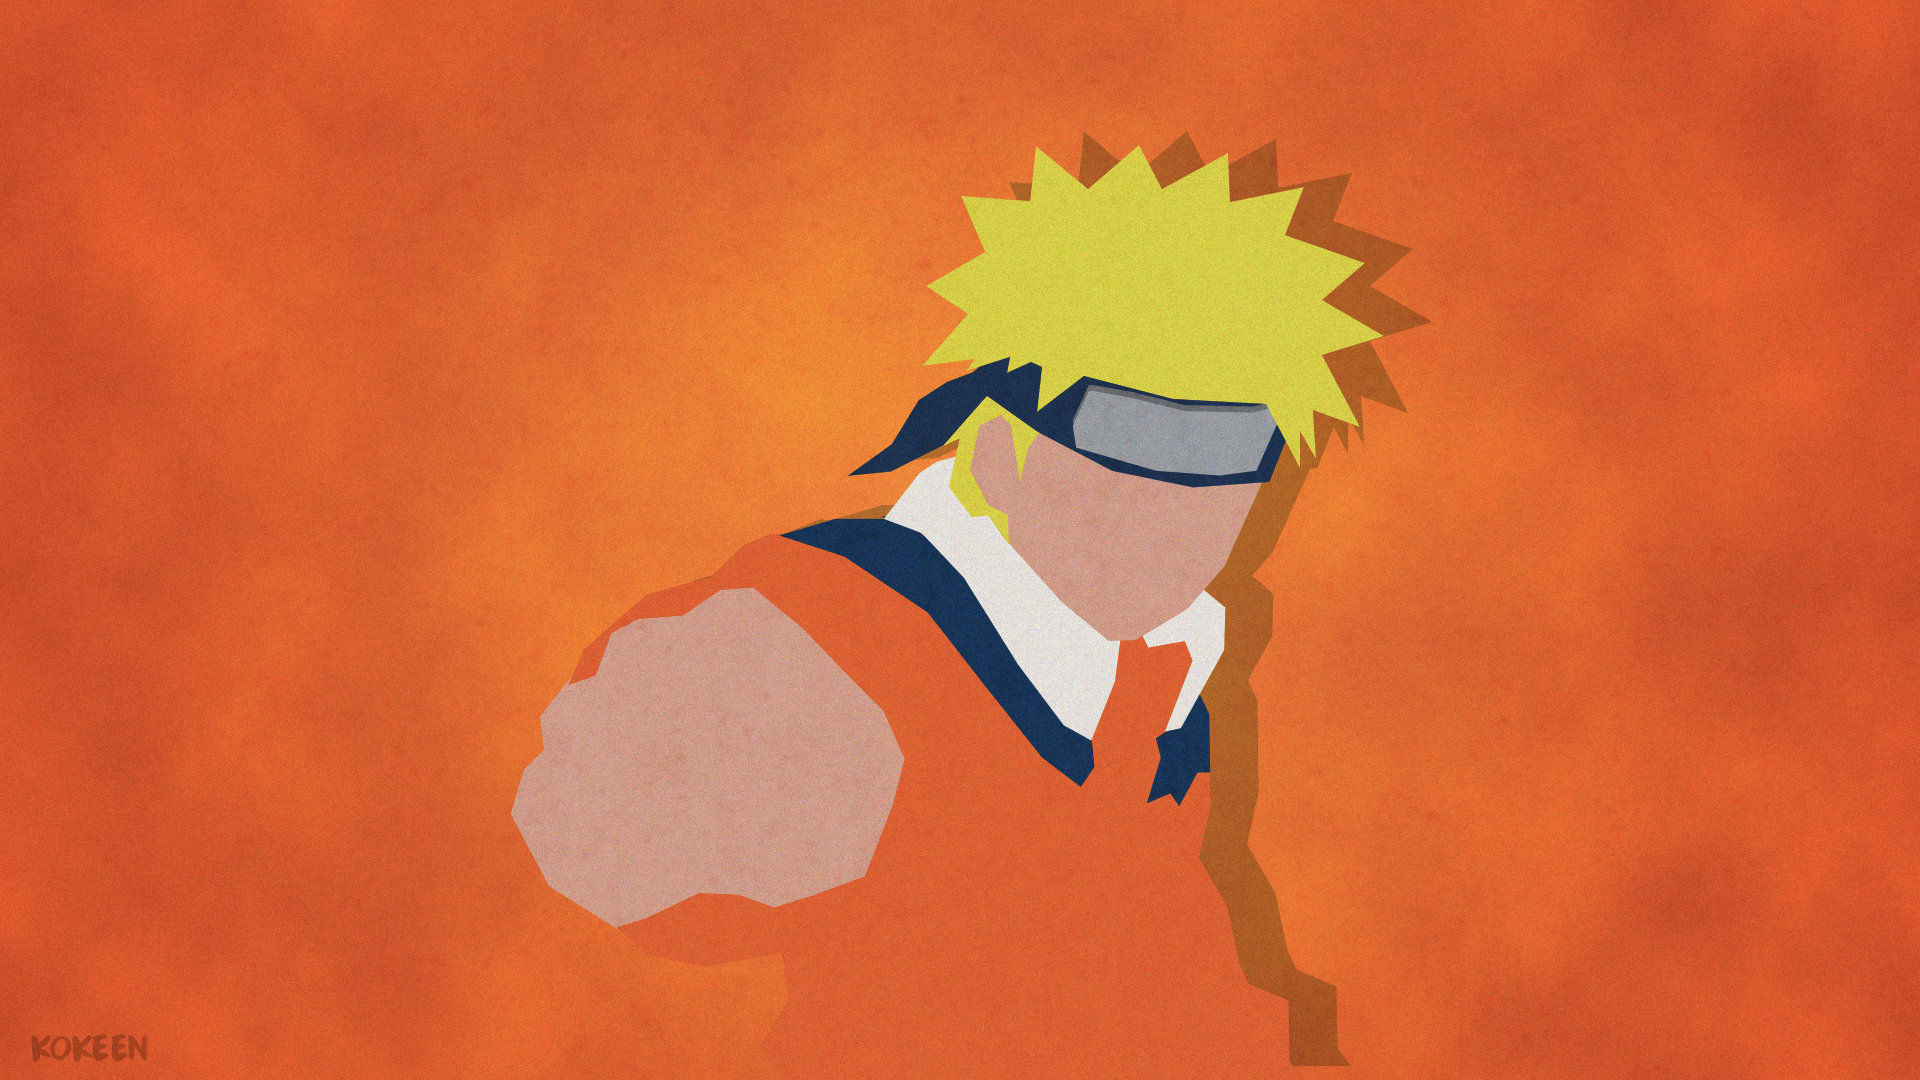 Naruto Minimalist Wallpaper With Images Naruto Wallpaper Naruto And Sasuke Wallpaper Best Naruto Wallpapers